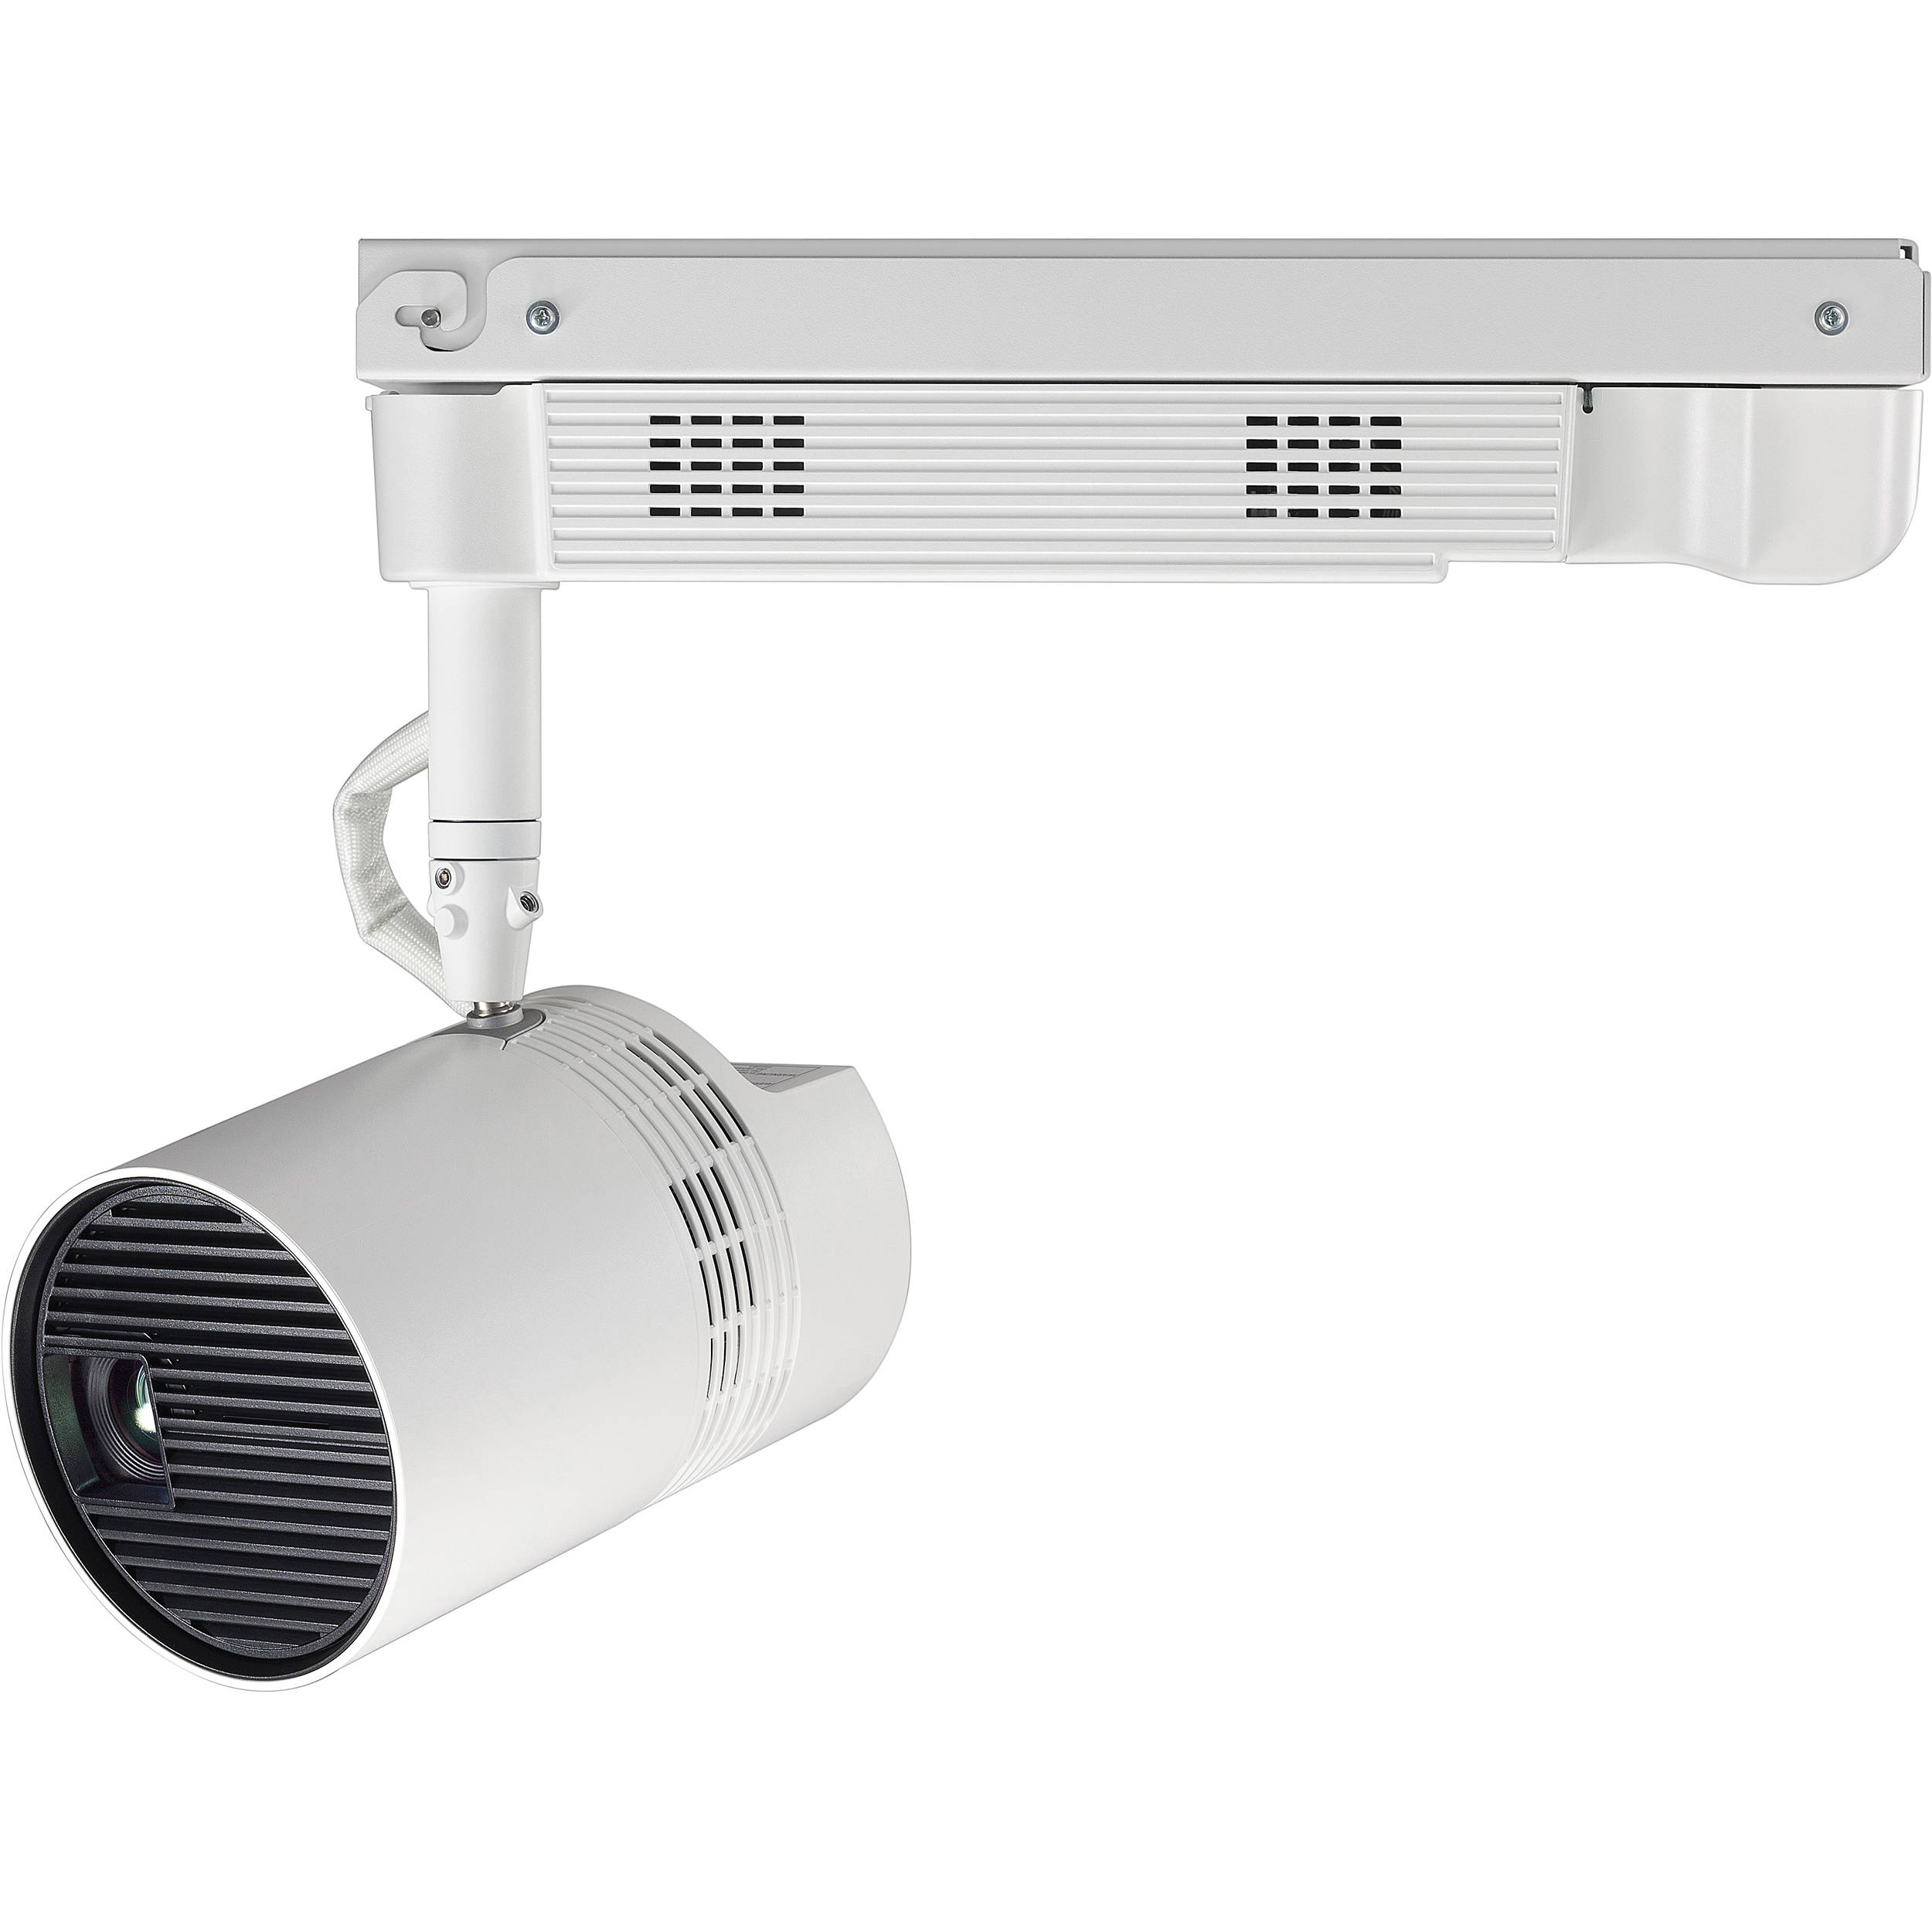 tm projector pro av to fit kit tilt close ceilings vision mount techmount ceiling the cc fitting products coupled bracket easy